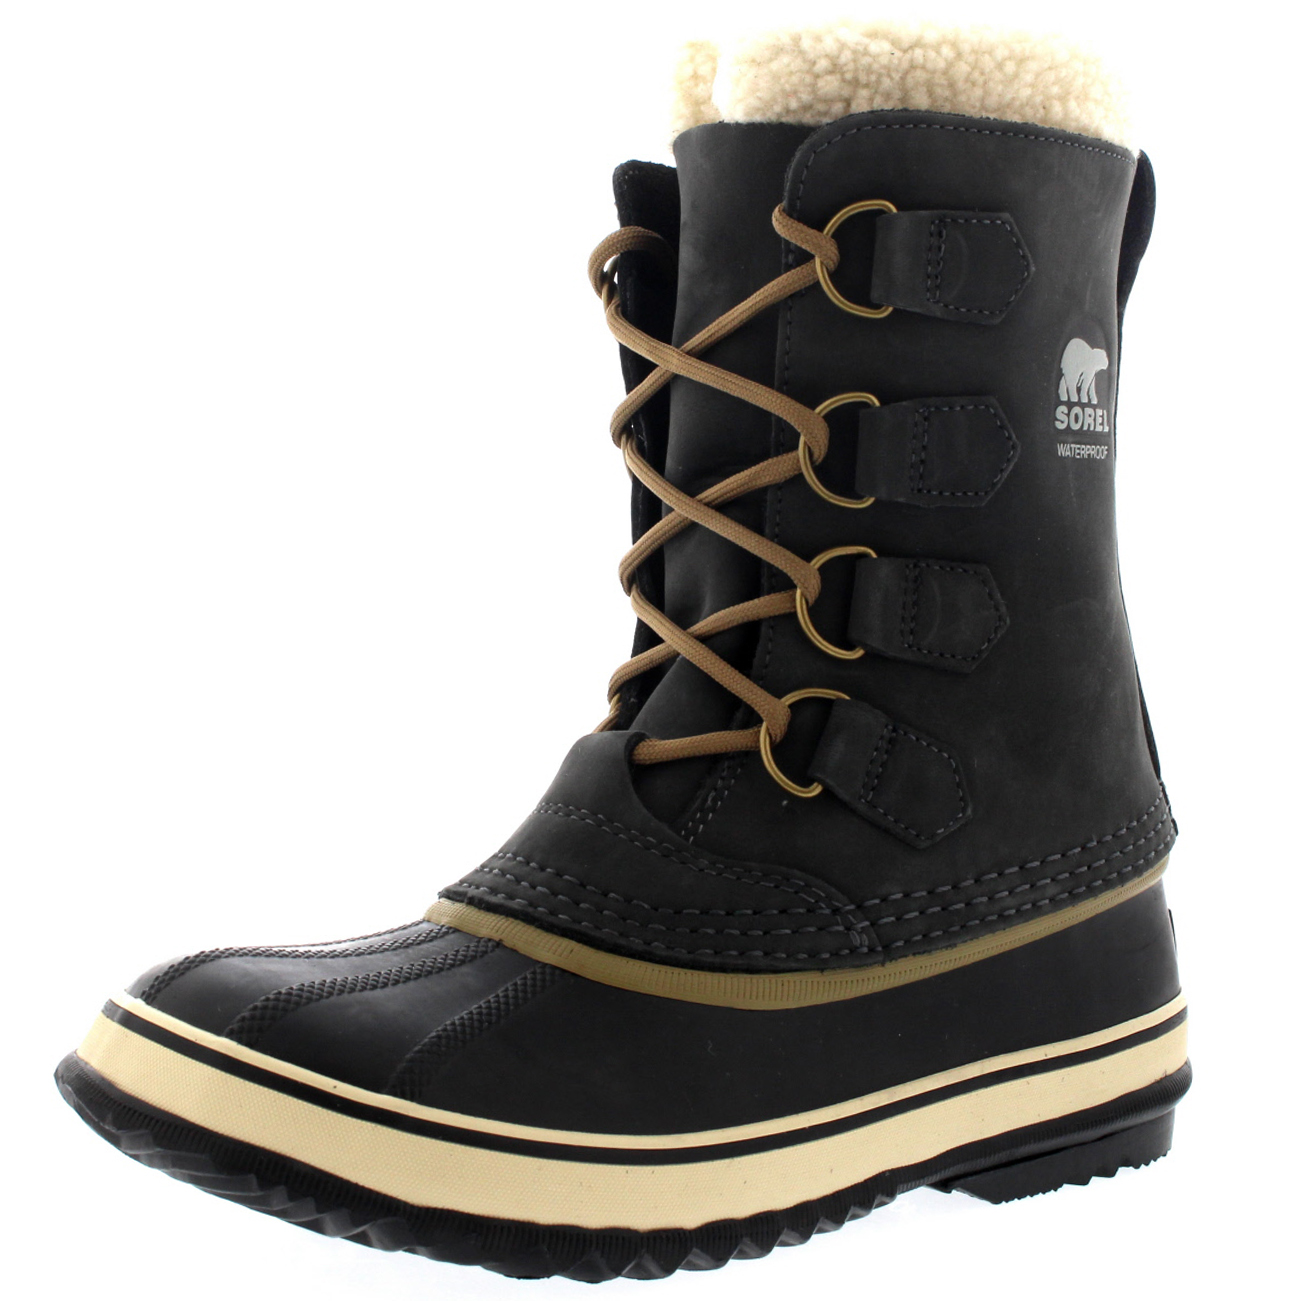 Sale Low Shipping sorel 1964 PAC 2 women's Snow boots in Visit New Online Buy Cheap Choice Clearance Buy Outlet Best Sale o20rsYEDw